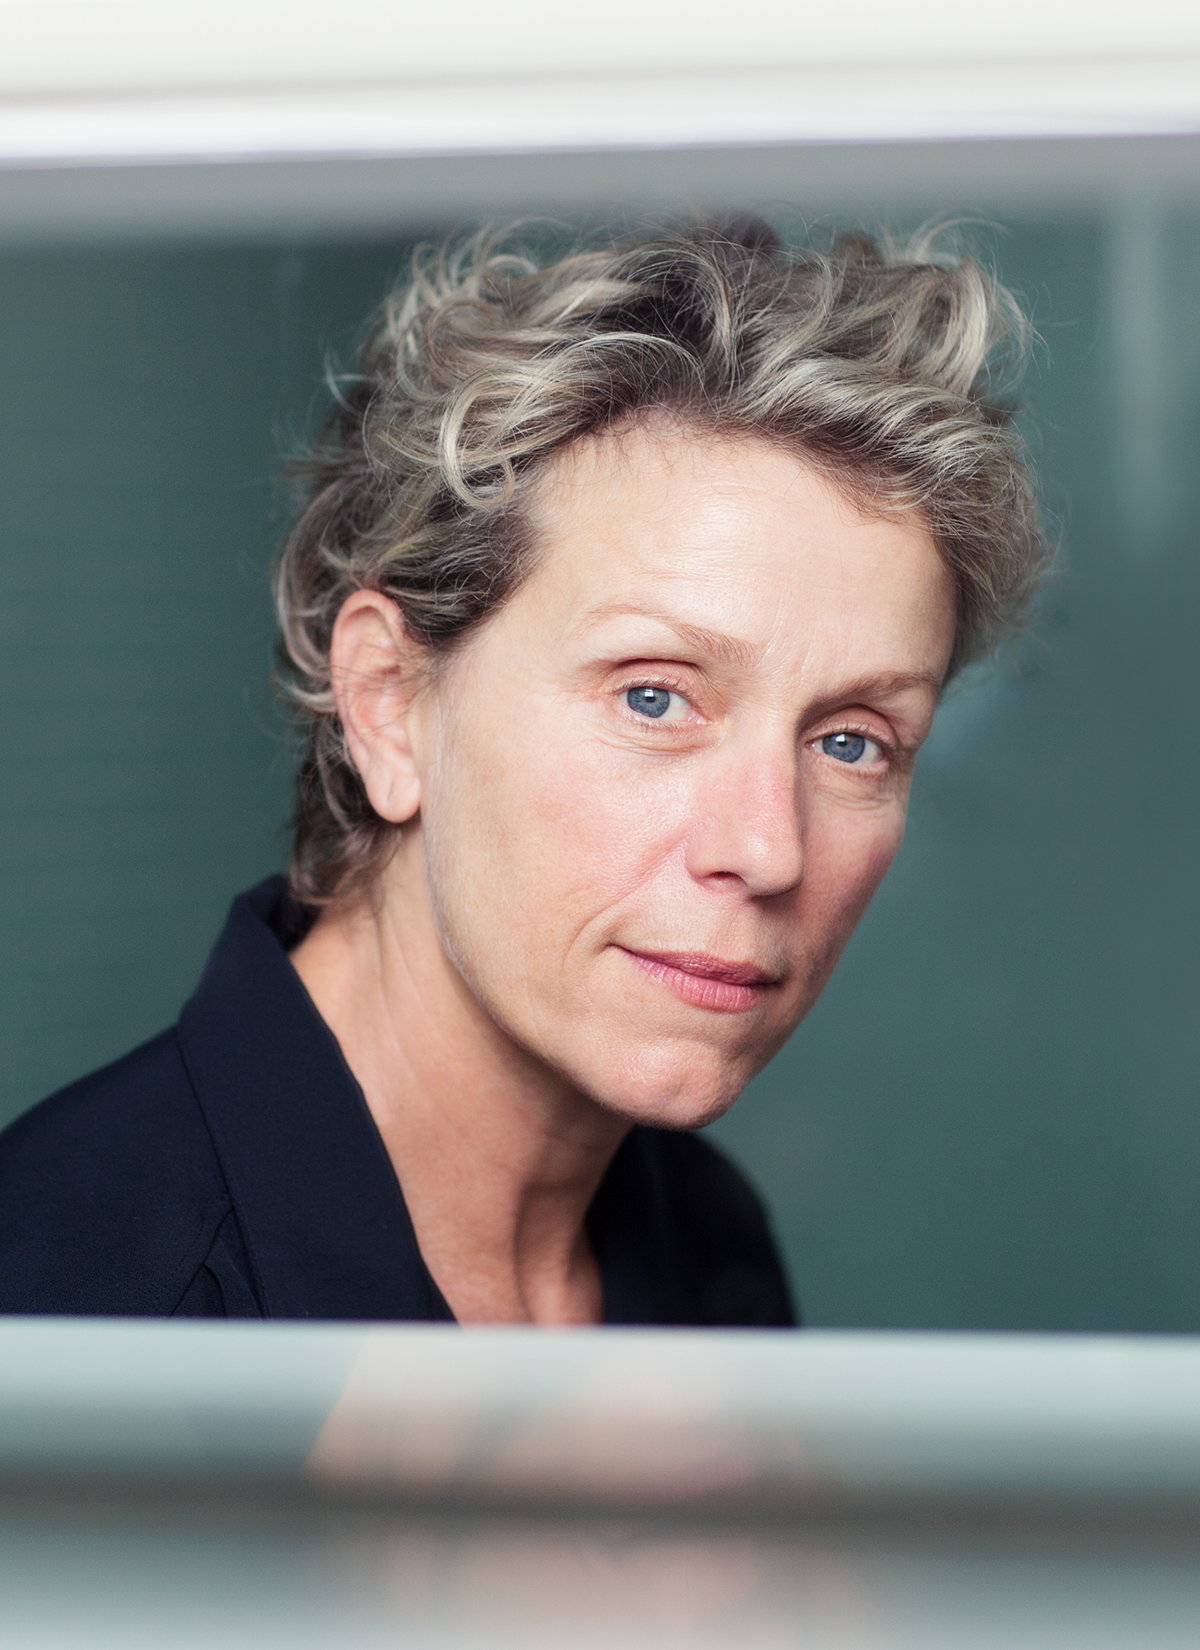 Caption: Frances McDormand, Credit: Photo by Alison Rosa